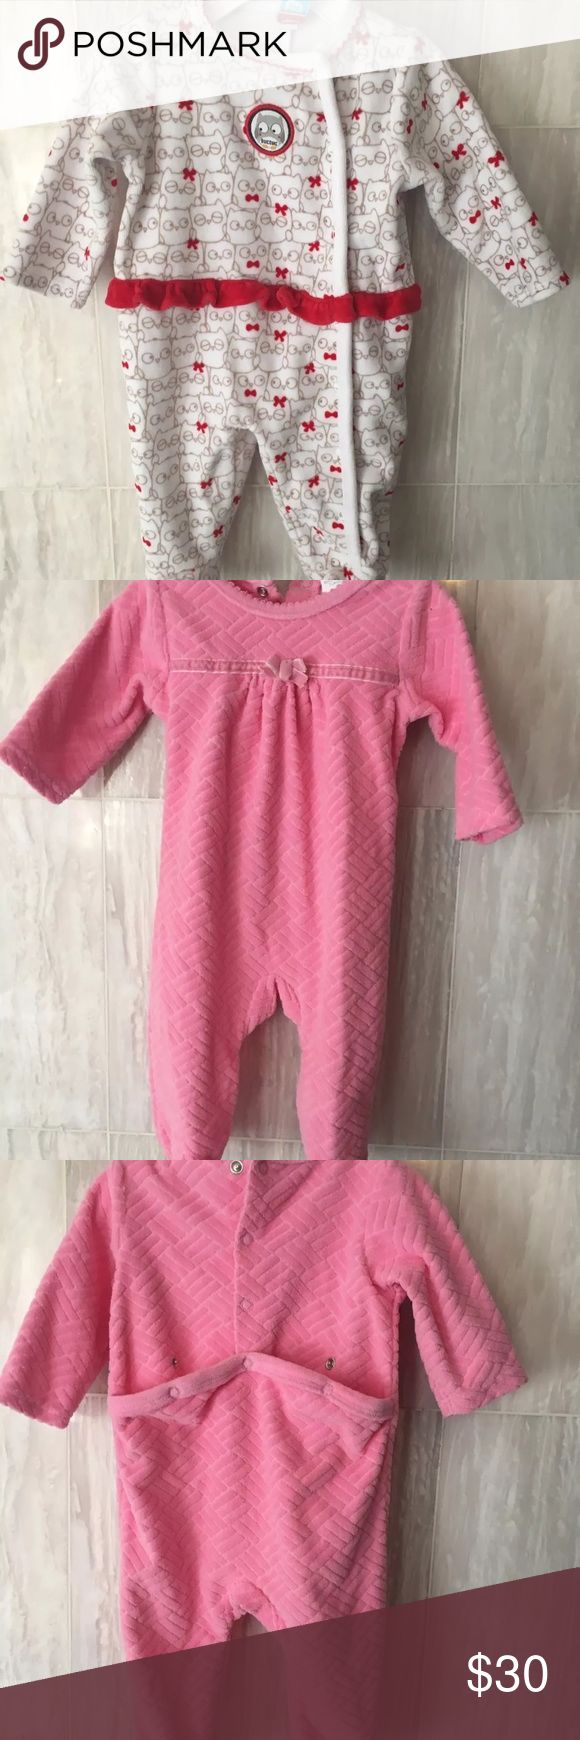 7 Outfits Bundle Girl Velour One Piece Rompers  3m Baby girl velour stretchie one piece rompers. LOT OF 6 BABY GIRL VELOUR ONE PIECE ROMPERS.  •OFFSPRING - 3 MONTHS •CHICCO - 3 MONTHS •TUC TUC - 3 MONTHS •BABY DOVE - 3-6 MONTHS •ABSORBA - 0-3 MONTHS •ABSORBA - 0-3 MONTHS Chico's One Pieces Footies